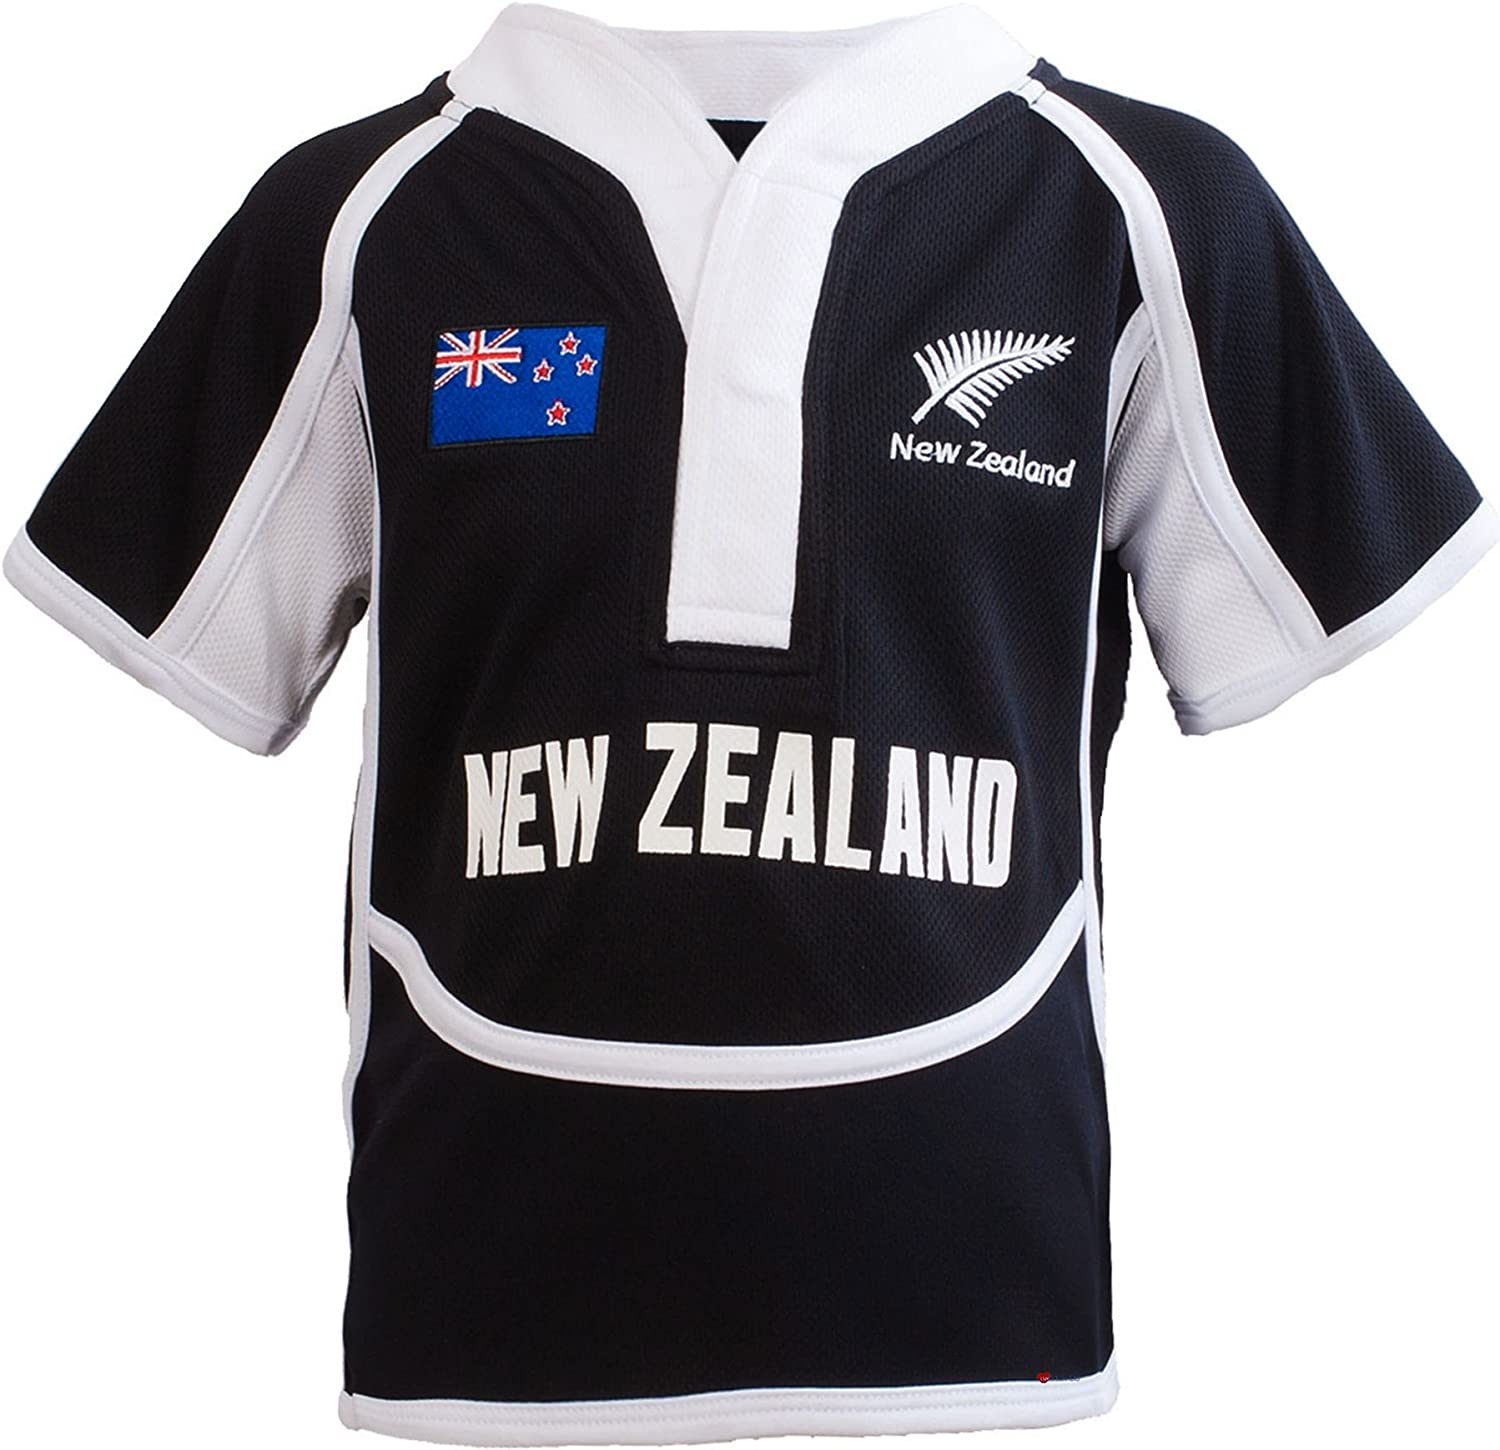 Amazon Com Kids Cool Dry Style Rugby Shirt In New Zealand Colours Size 5 6 Years Black White Clothing